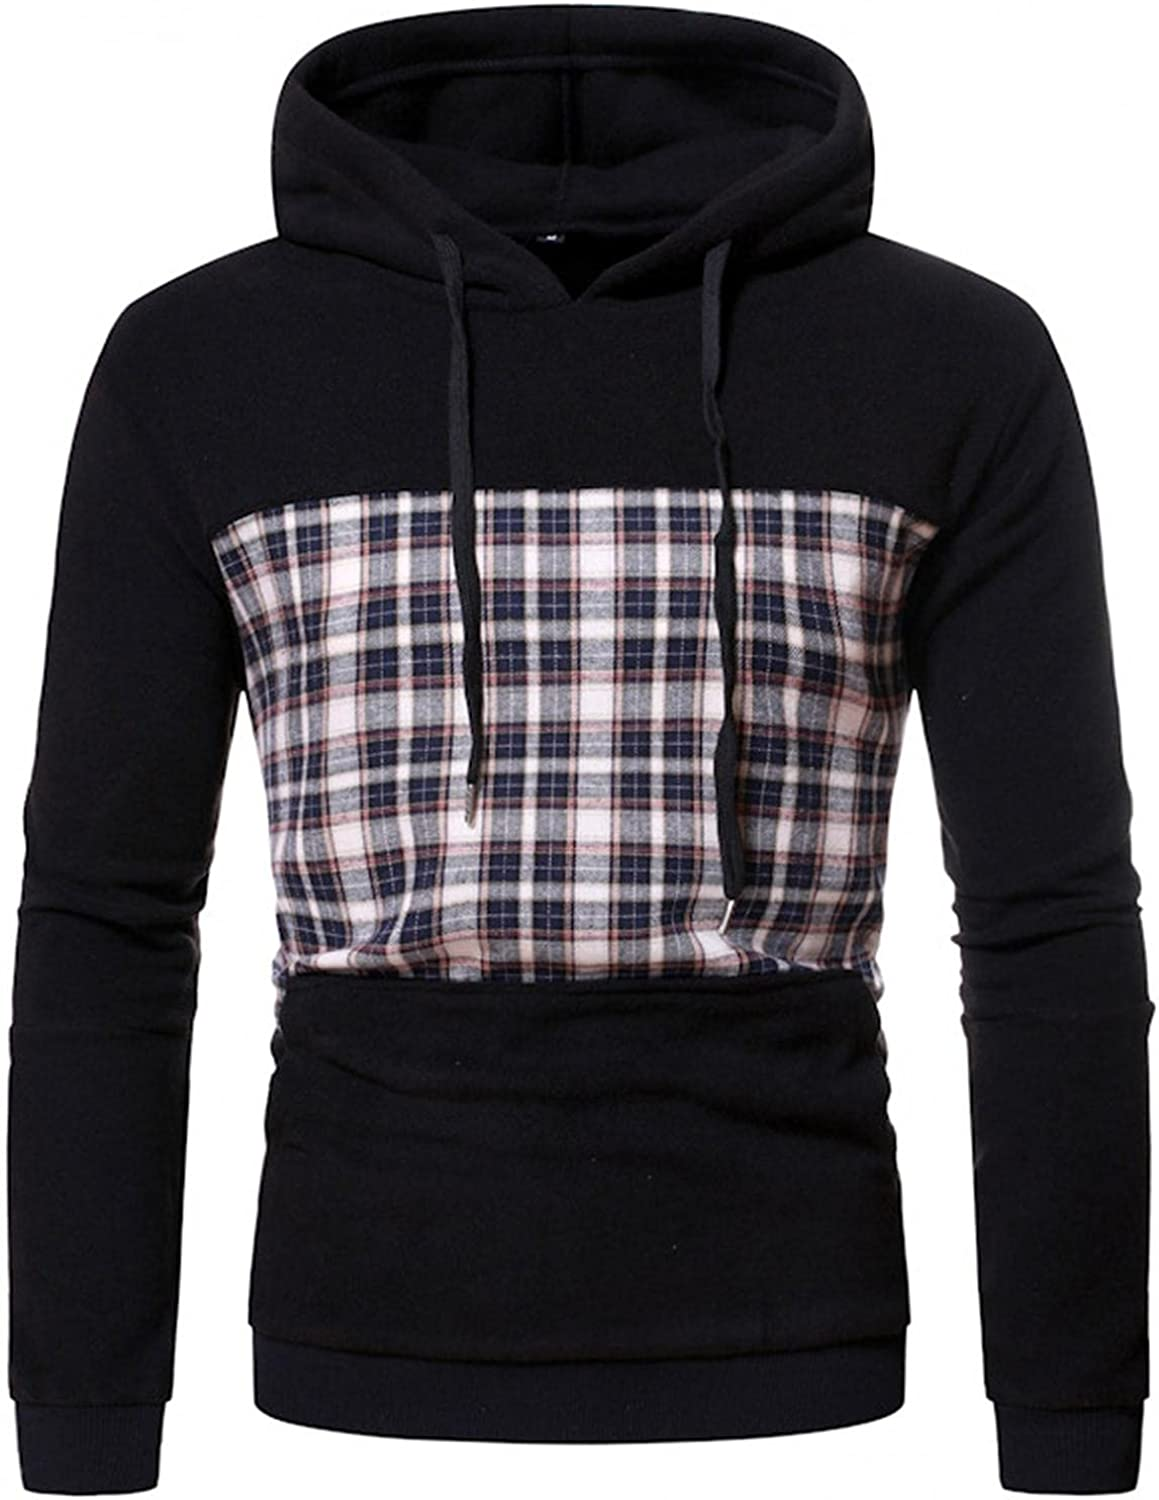 Aayomet Hoodies Sweatshirts for Men Patchwork Color Block Checked Casual Long Sleeve Hooded Pullover Tops Blouses Sweaters